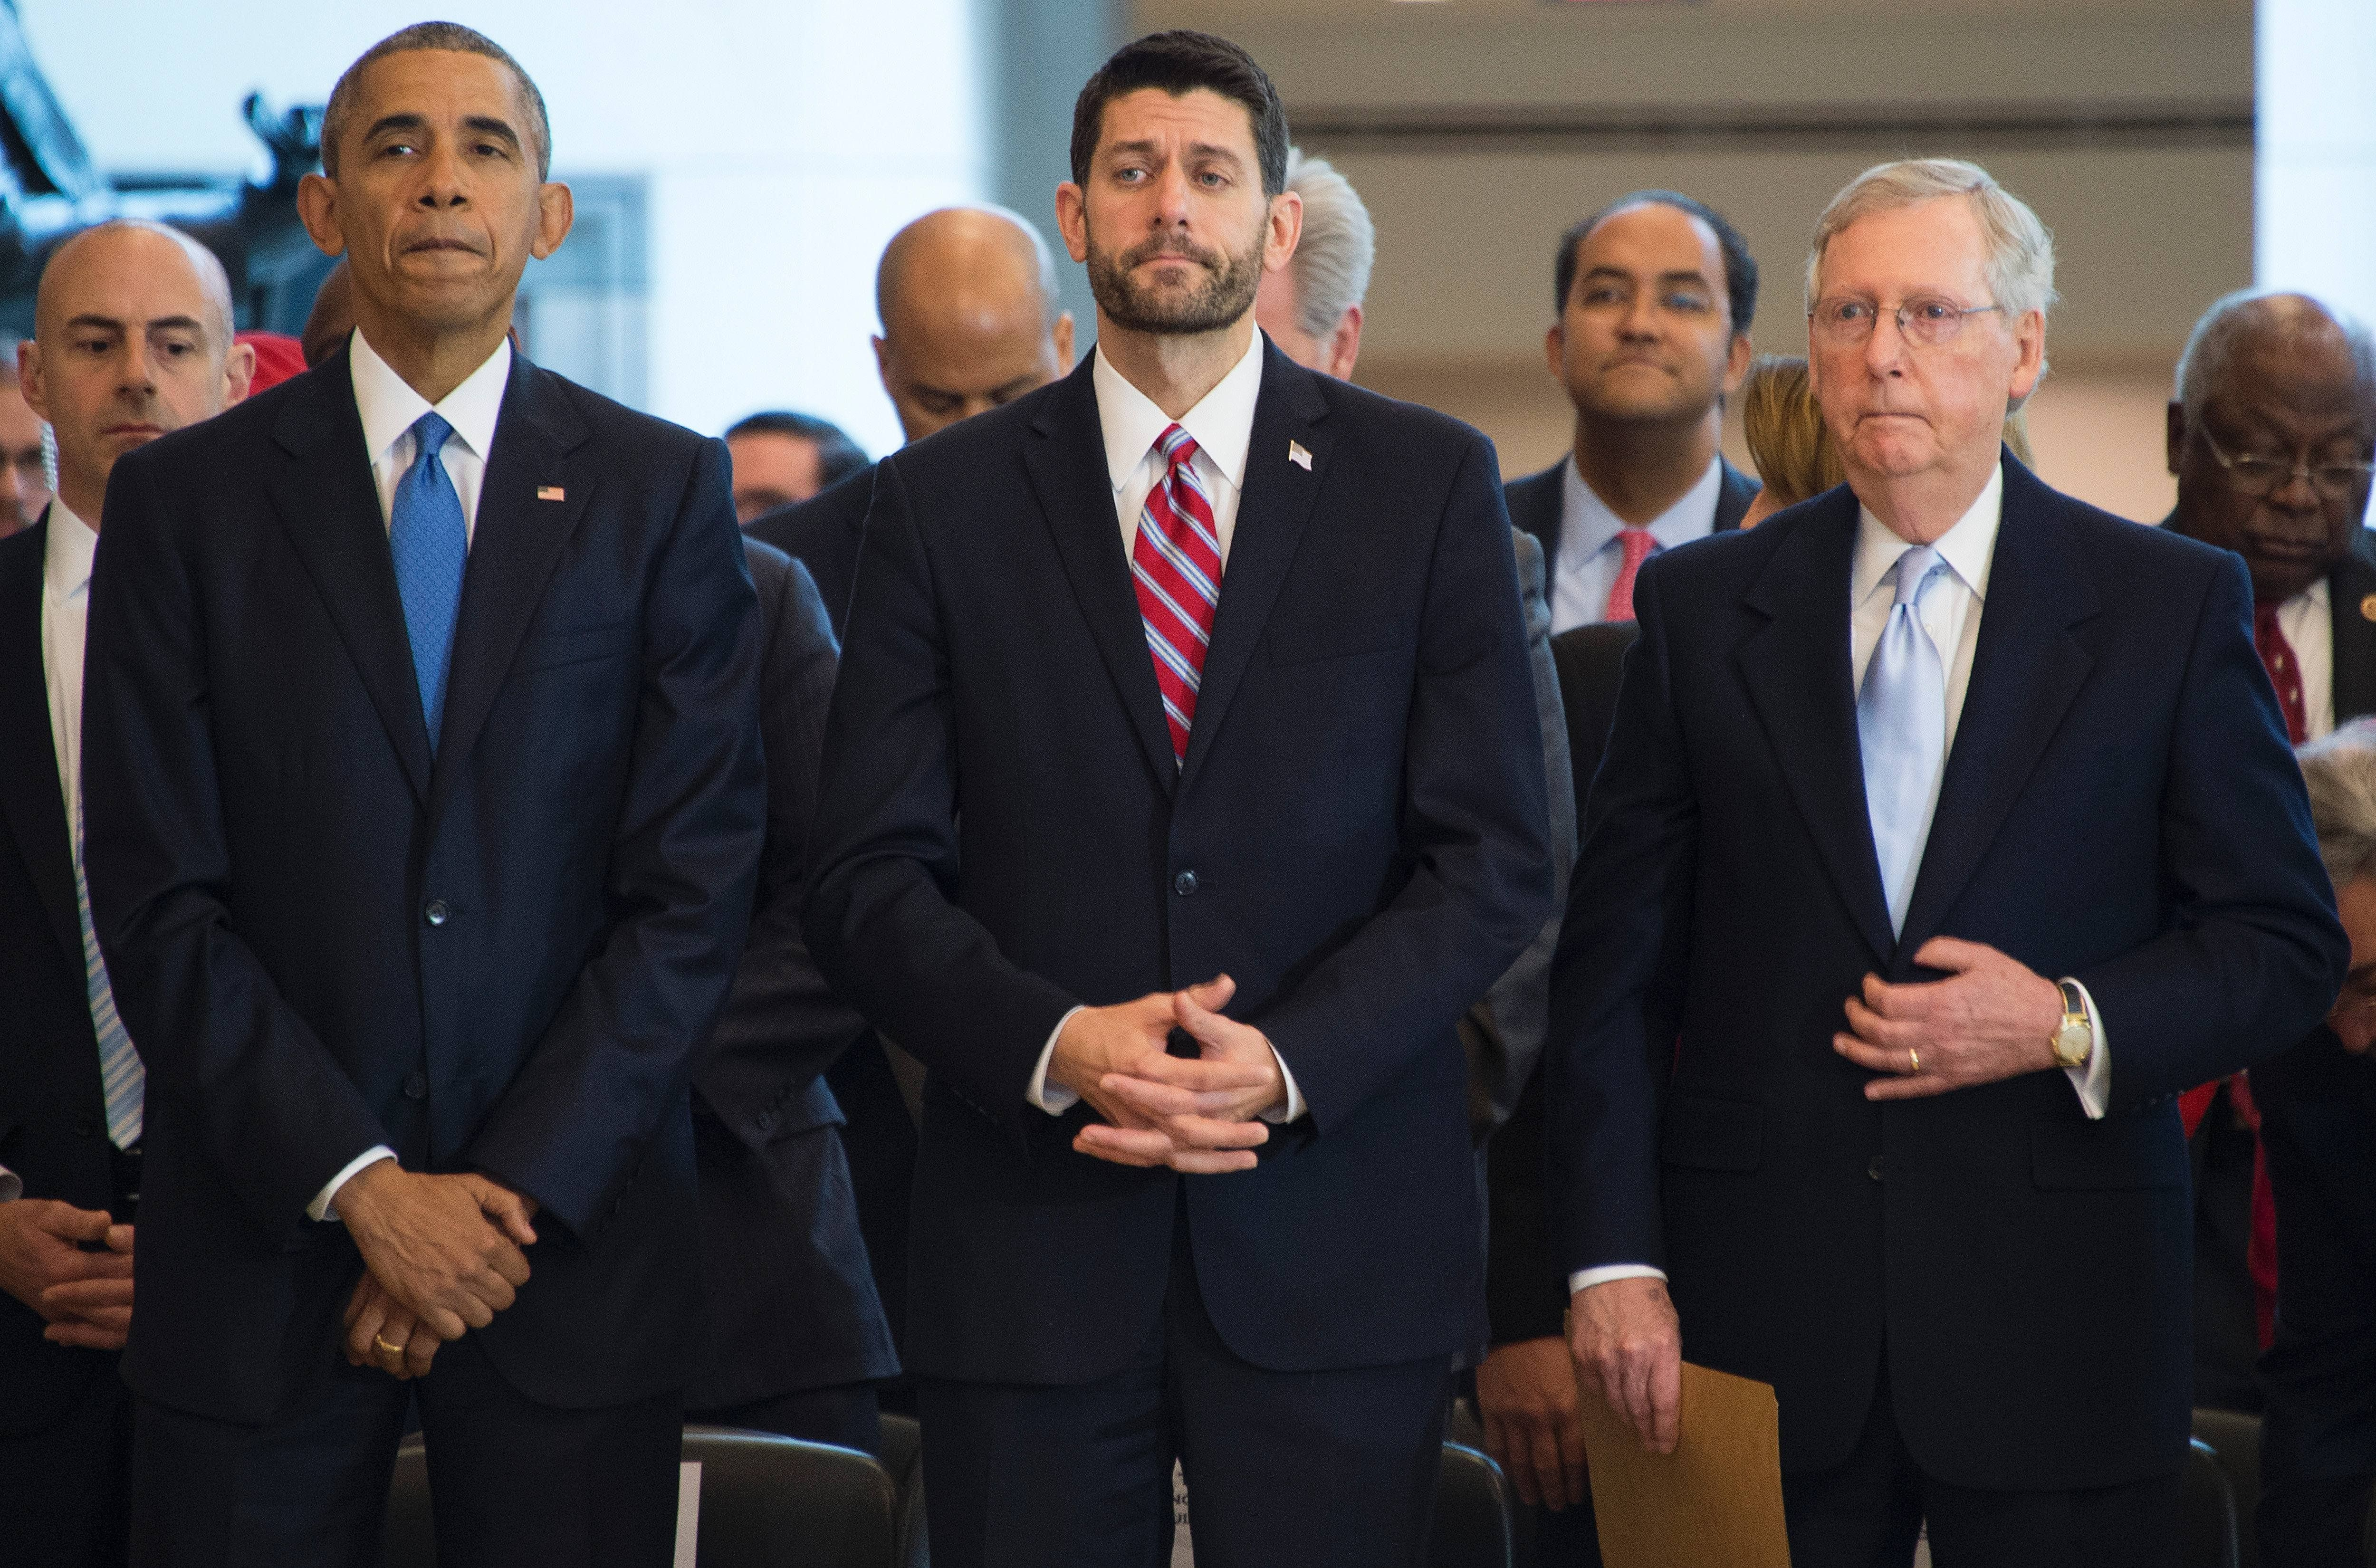 US President Barack Obama (L) stands with Speaker of the House Paul Ryan ,R-WI,(C) and Senate Majority Leader Mitch McConnell,R-KY, (R) during a ceremony commemorating the 150th anniversary of the ratification fo the 13th Amenment, abolishing slavery, at the US Capitol in Washington, DC, December 9, 2015.  AFP PHOTO / JIM WATSON / AFP / JIM WATSON        (Photo credit should read JIM WATSON/AFP/Getty Images)